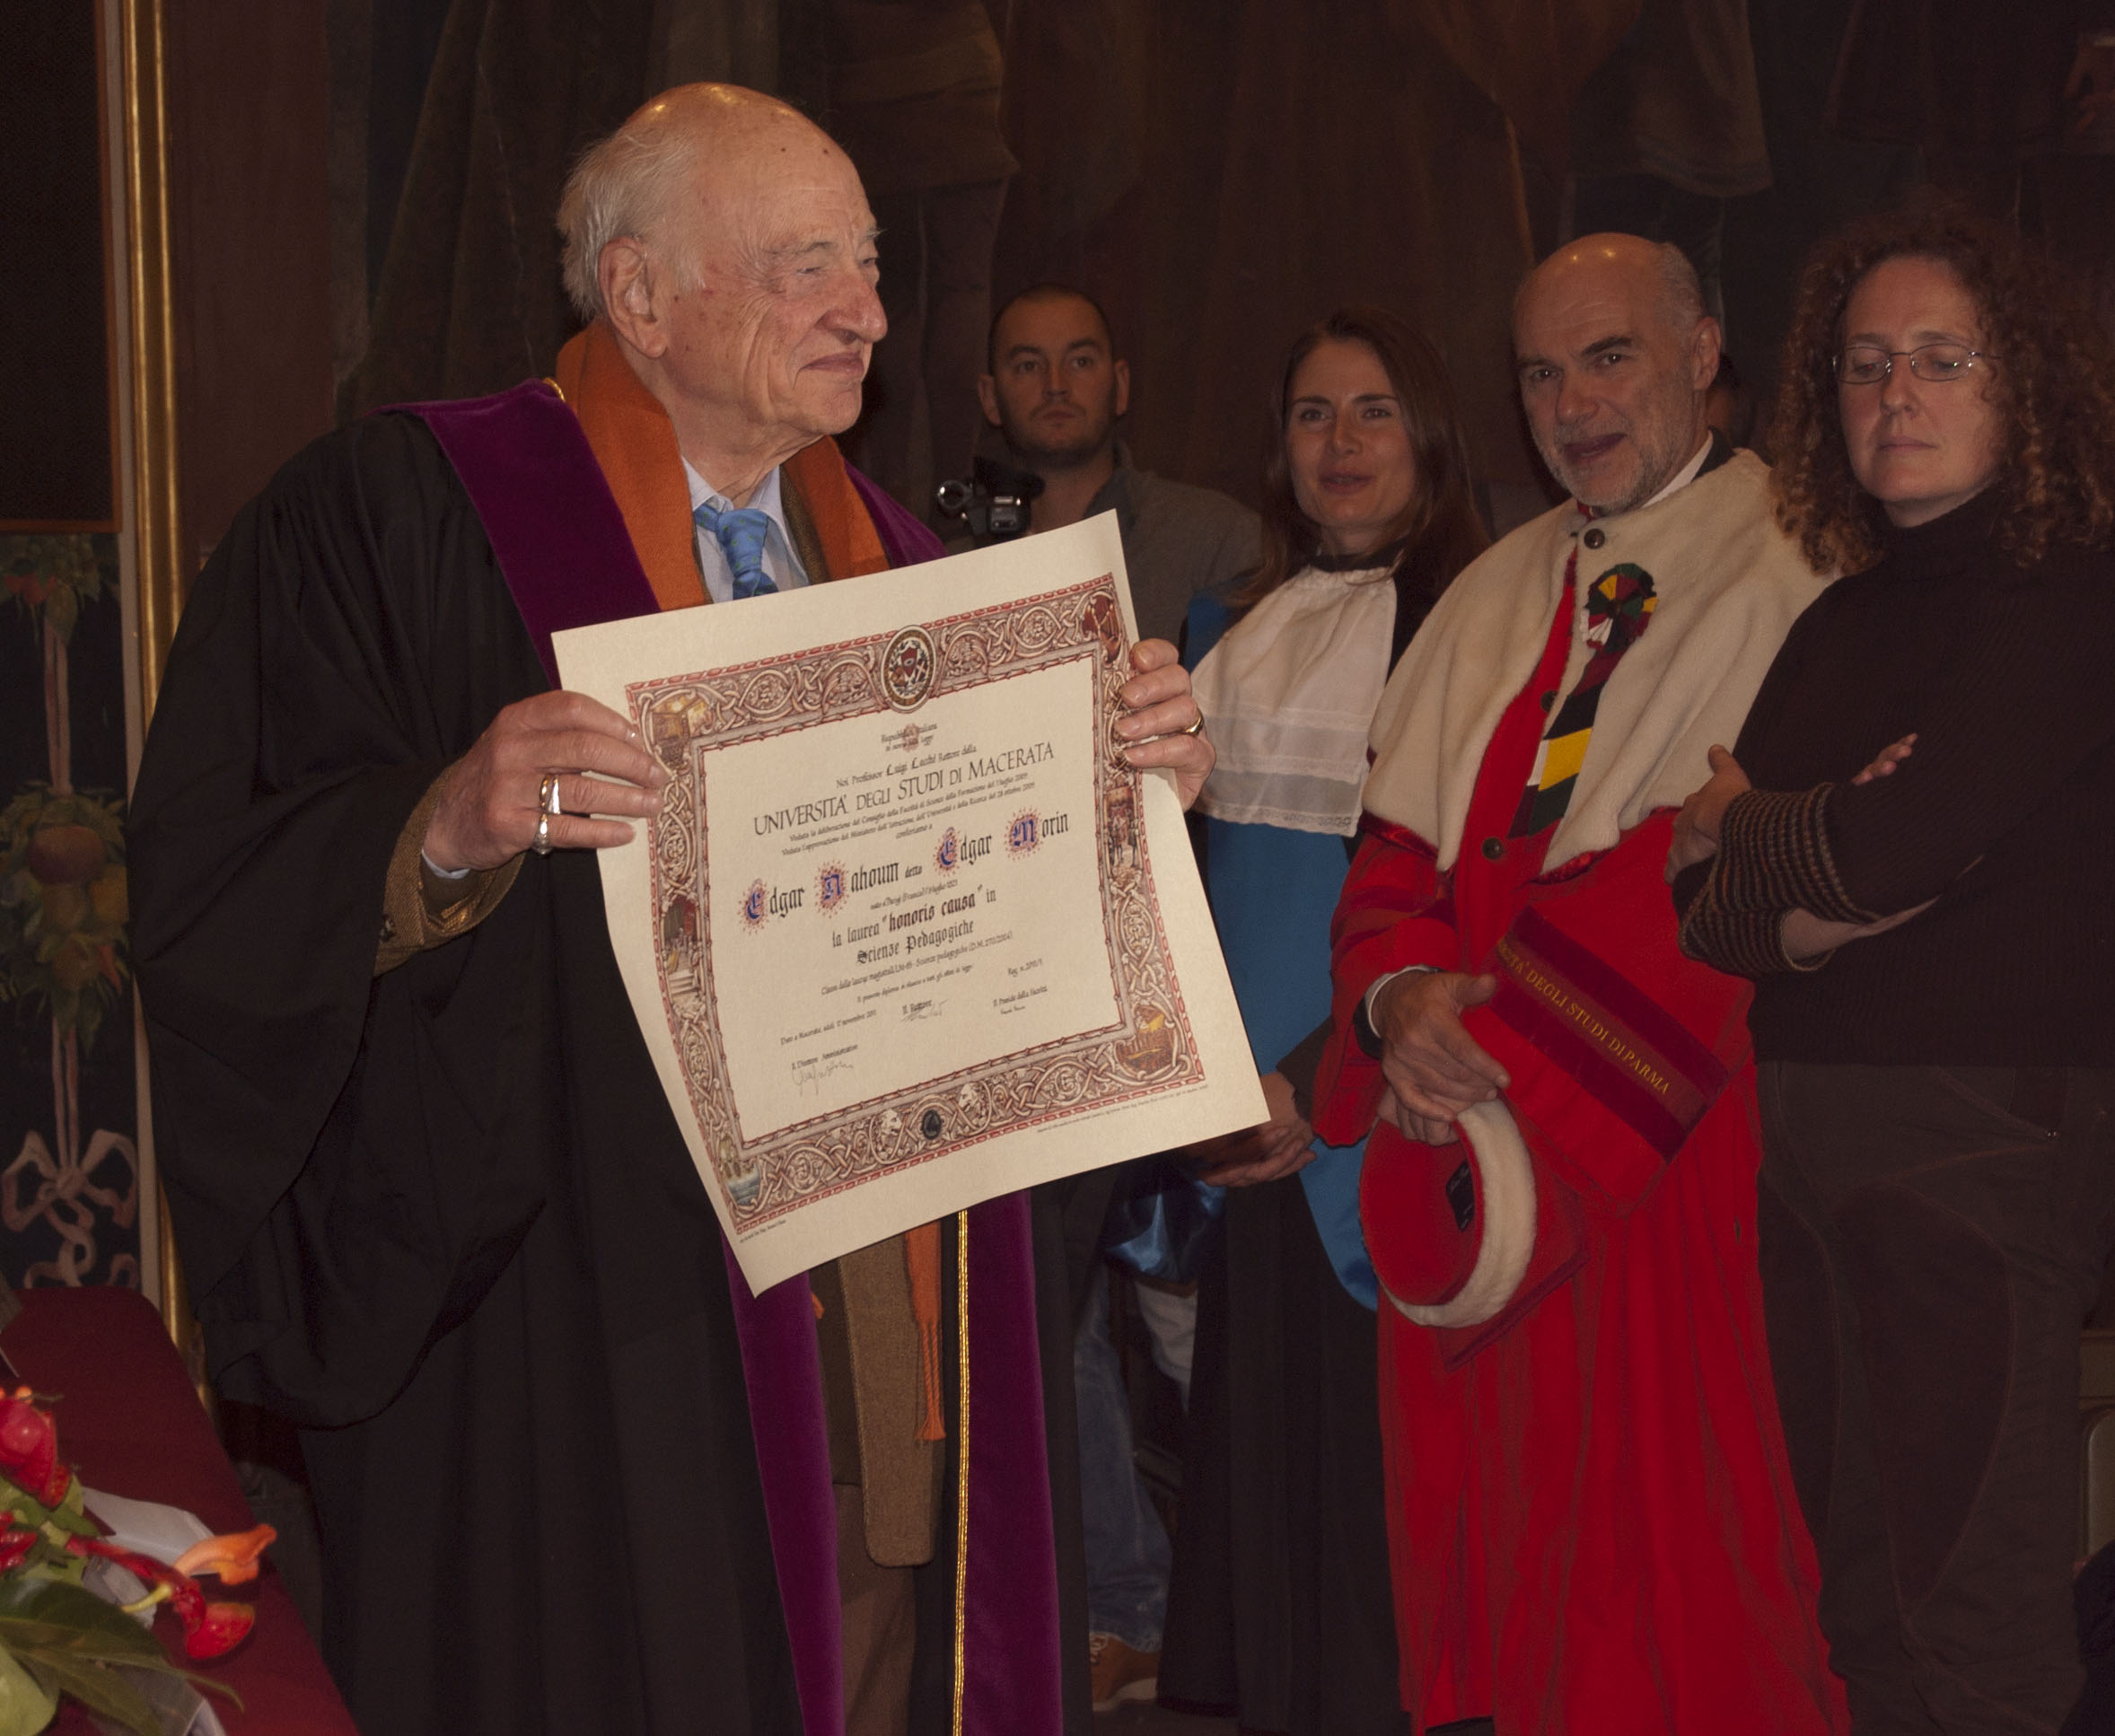 Morin laureato honoris causa in Scienze Pedagogiche presso l'università di Macerata.